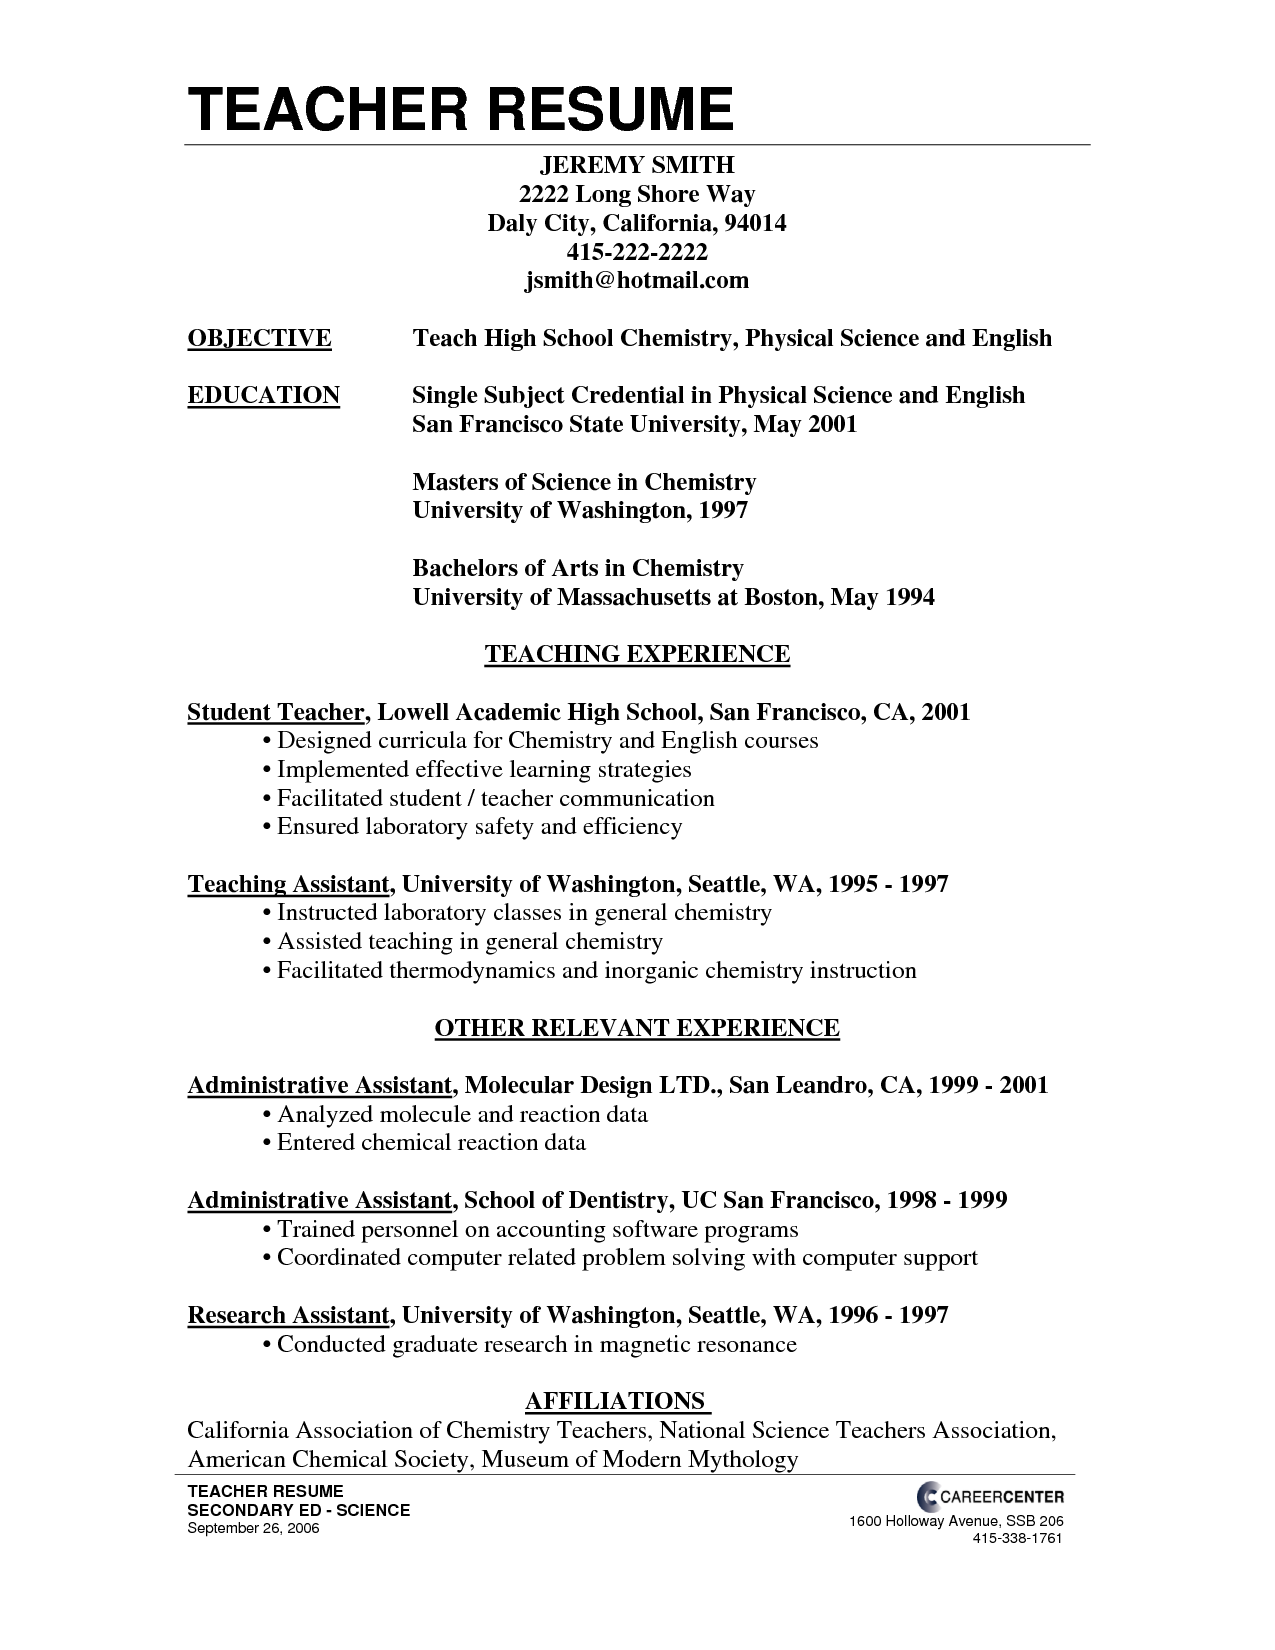 Resume Objective Samples For Teachers Sample Of Resume Objectives For  Teachers Jeremy Smith